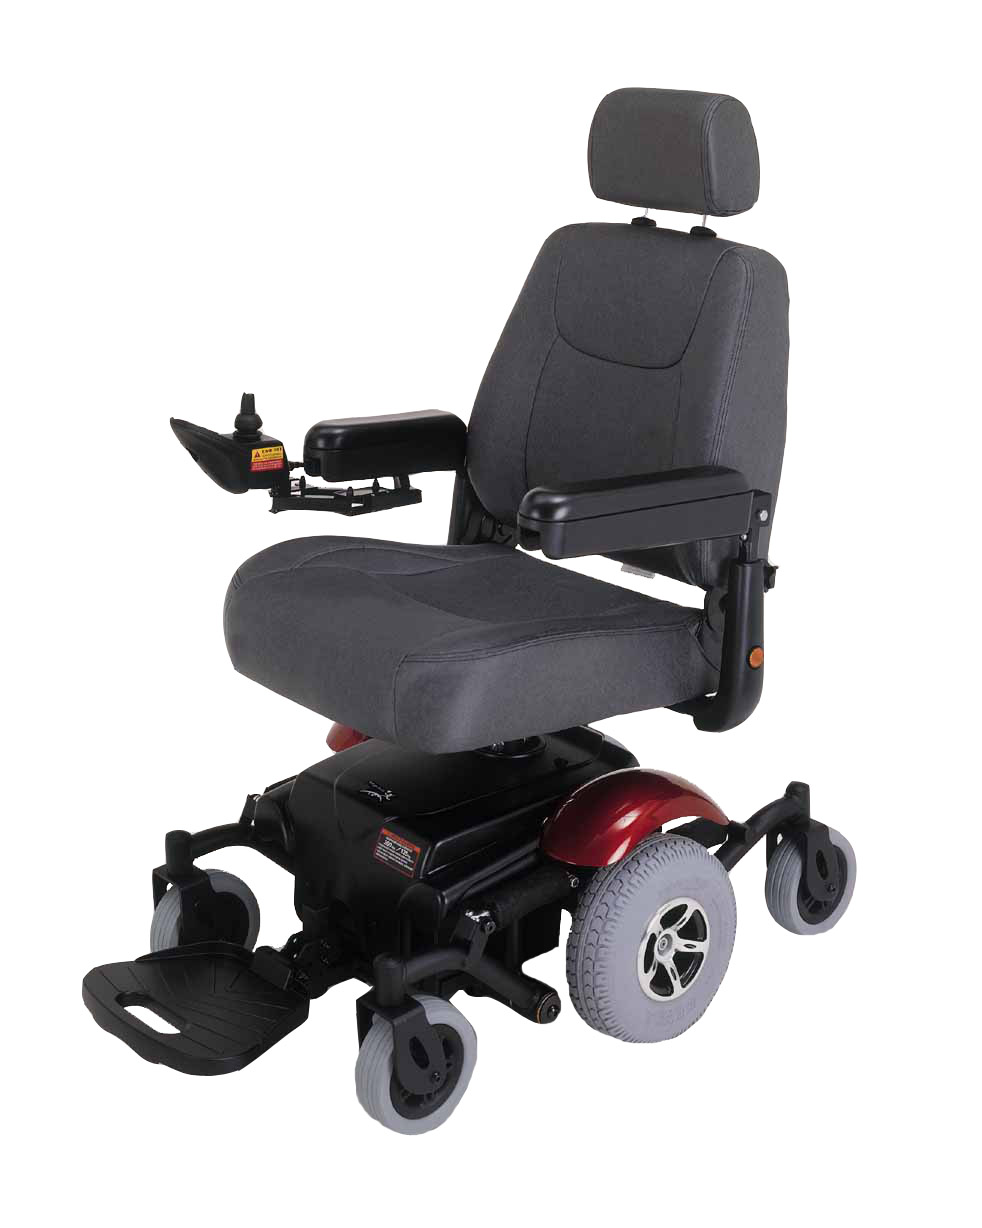 guardian aspire power wheelchair, quickie power wheel chair, boss scout power wheel chair batteries, mini jazzy power wheelchair parts